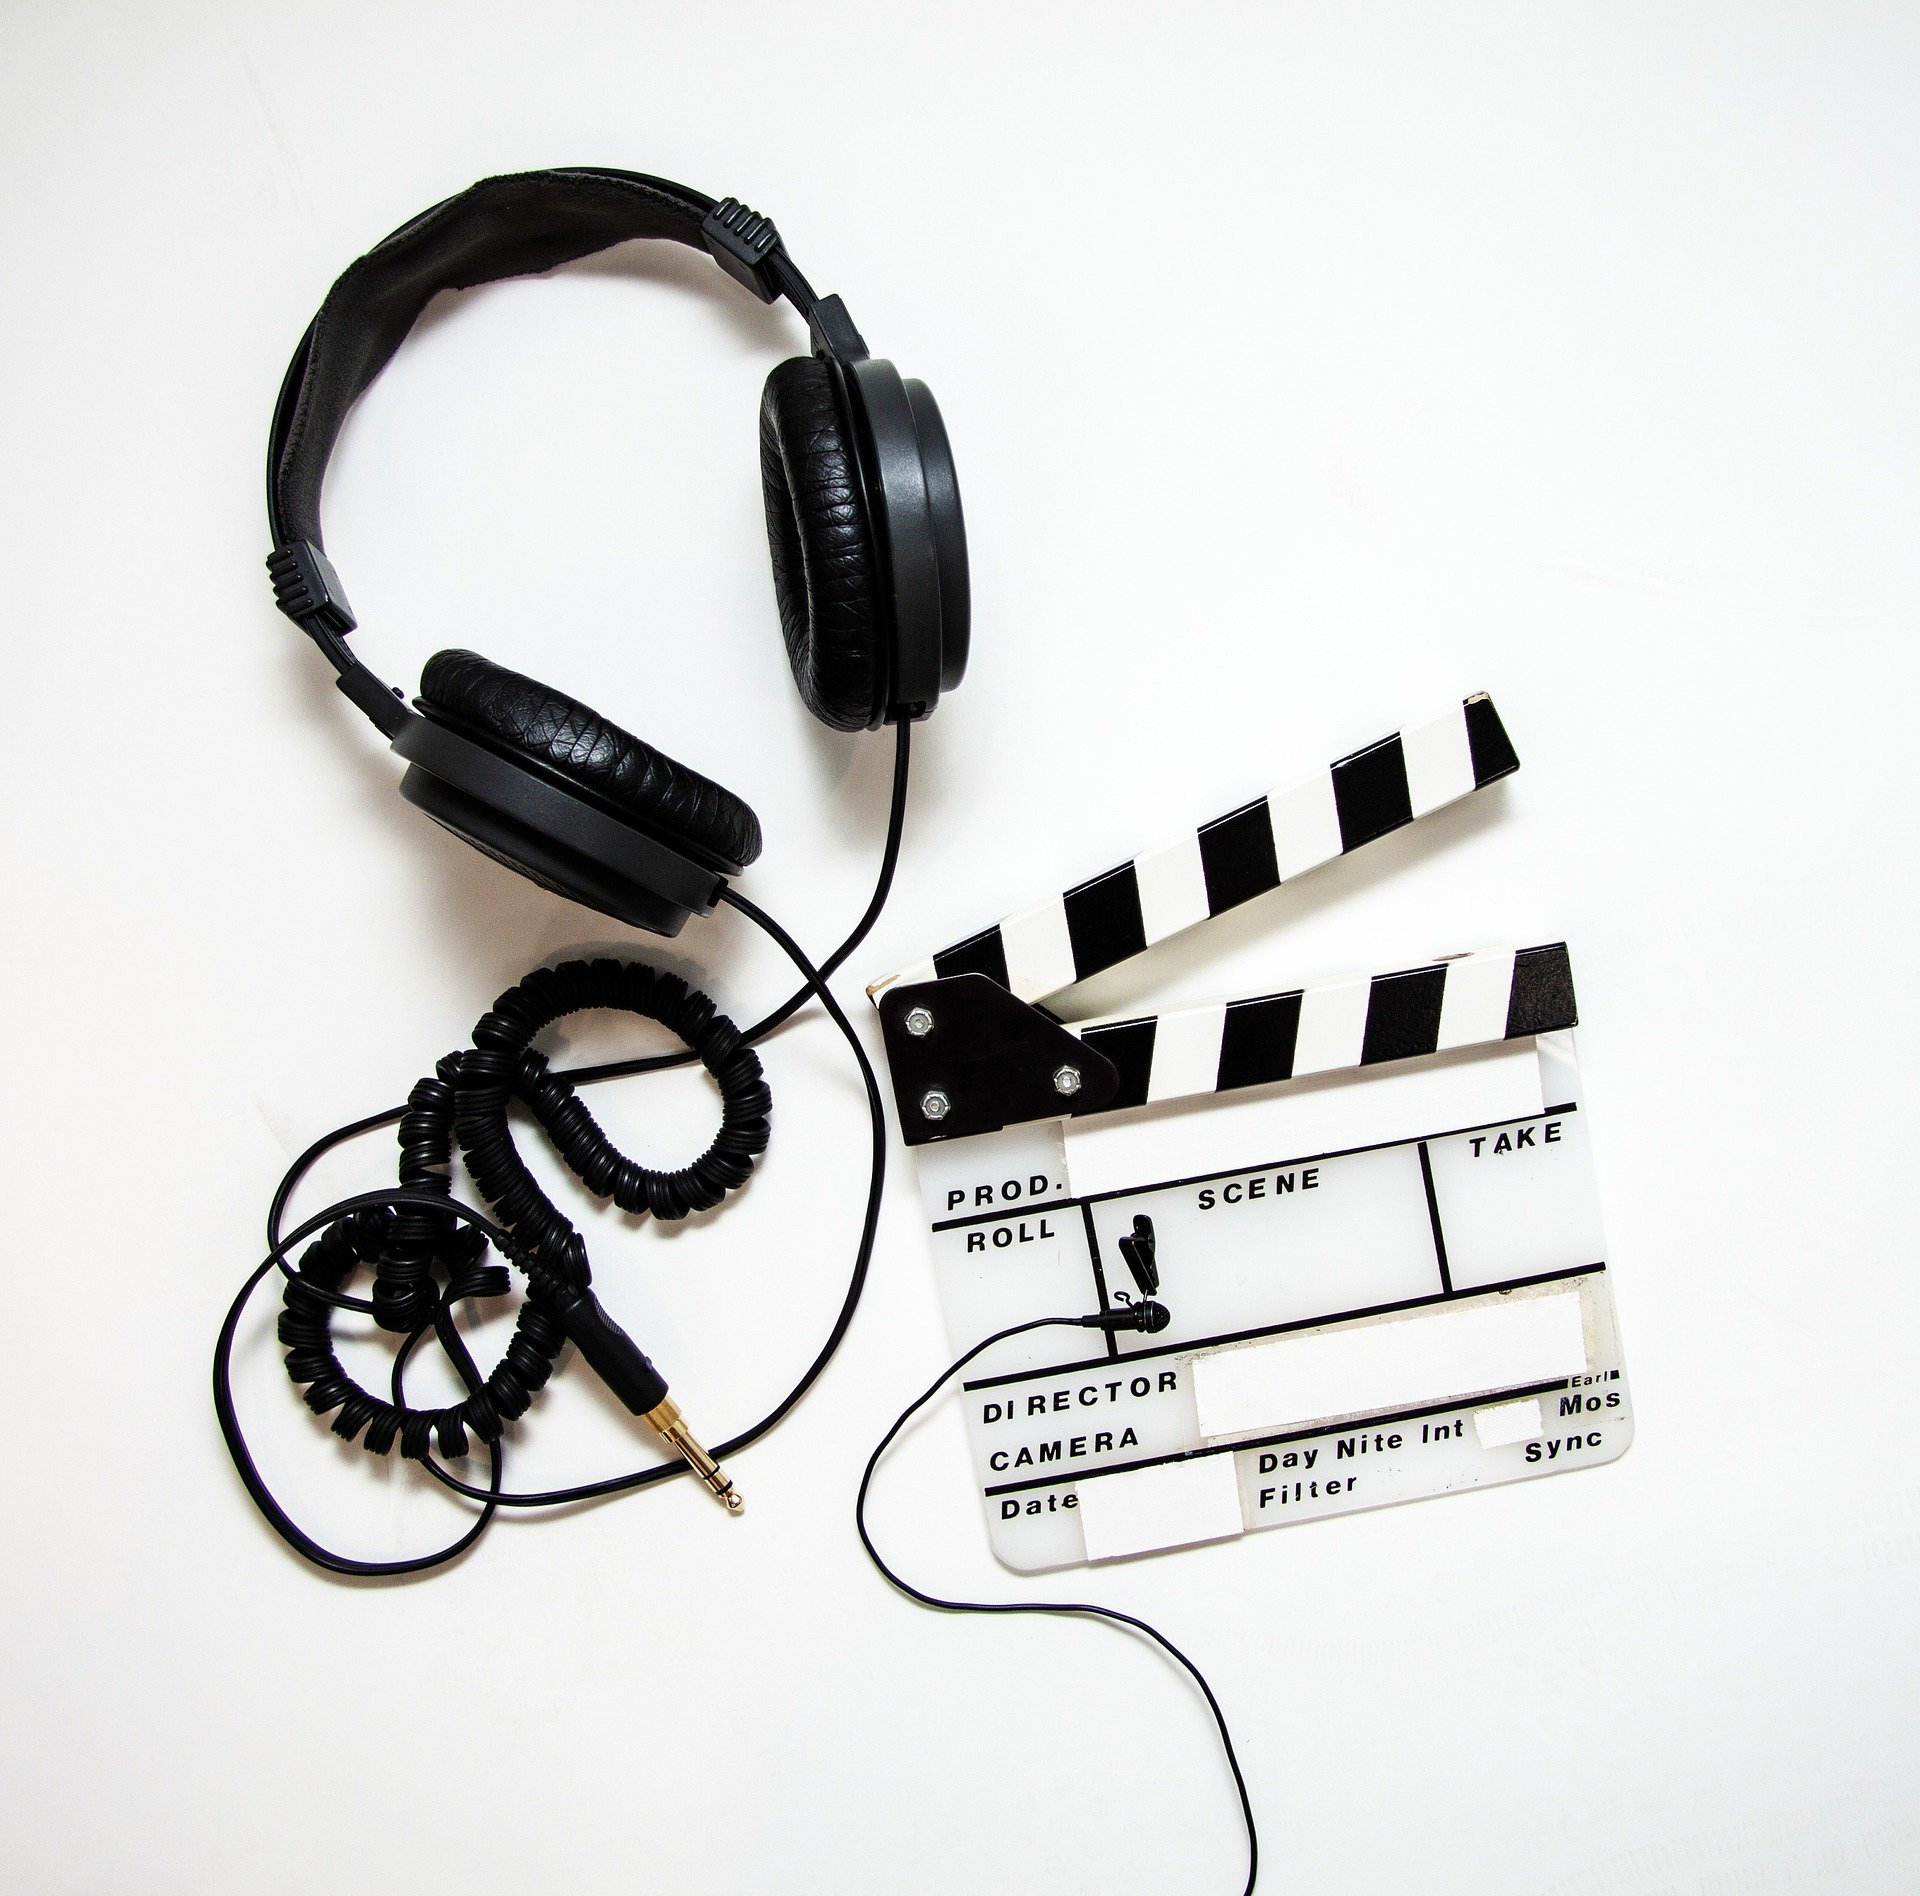 Clapper board and headphones